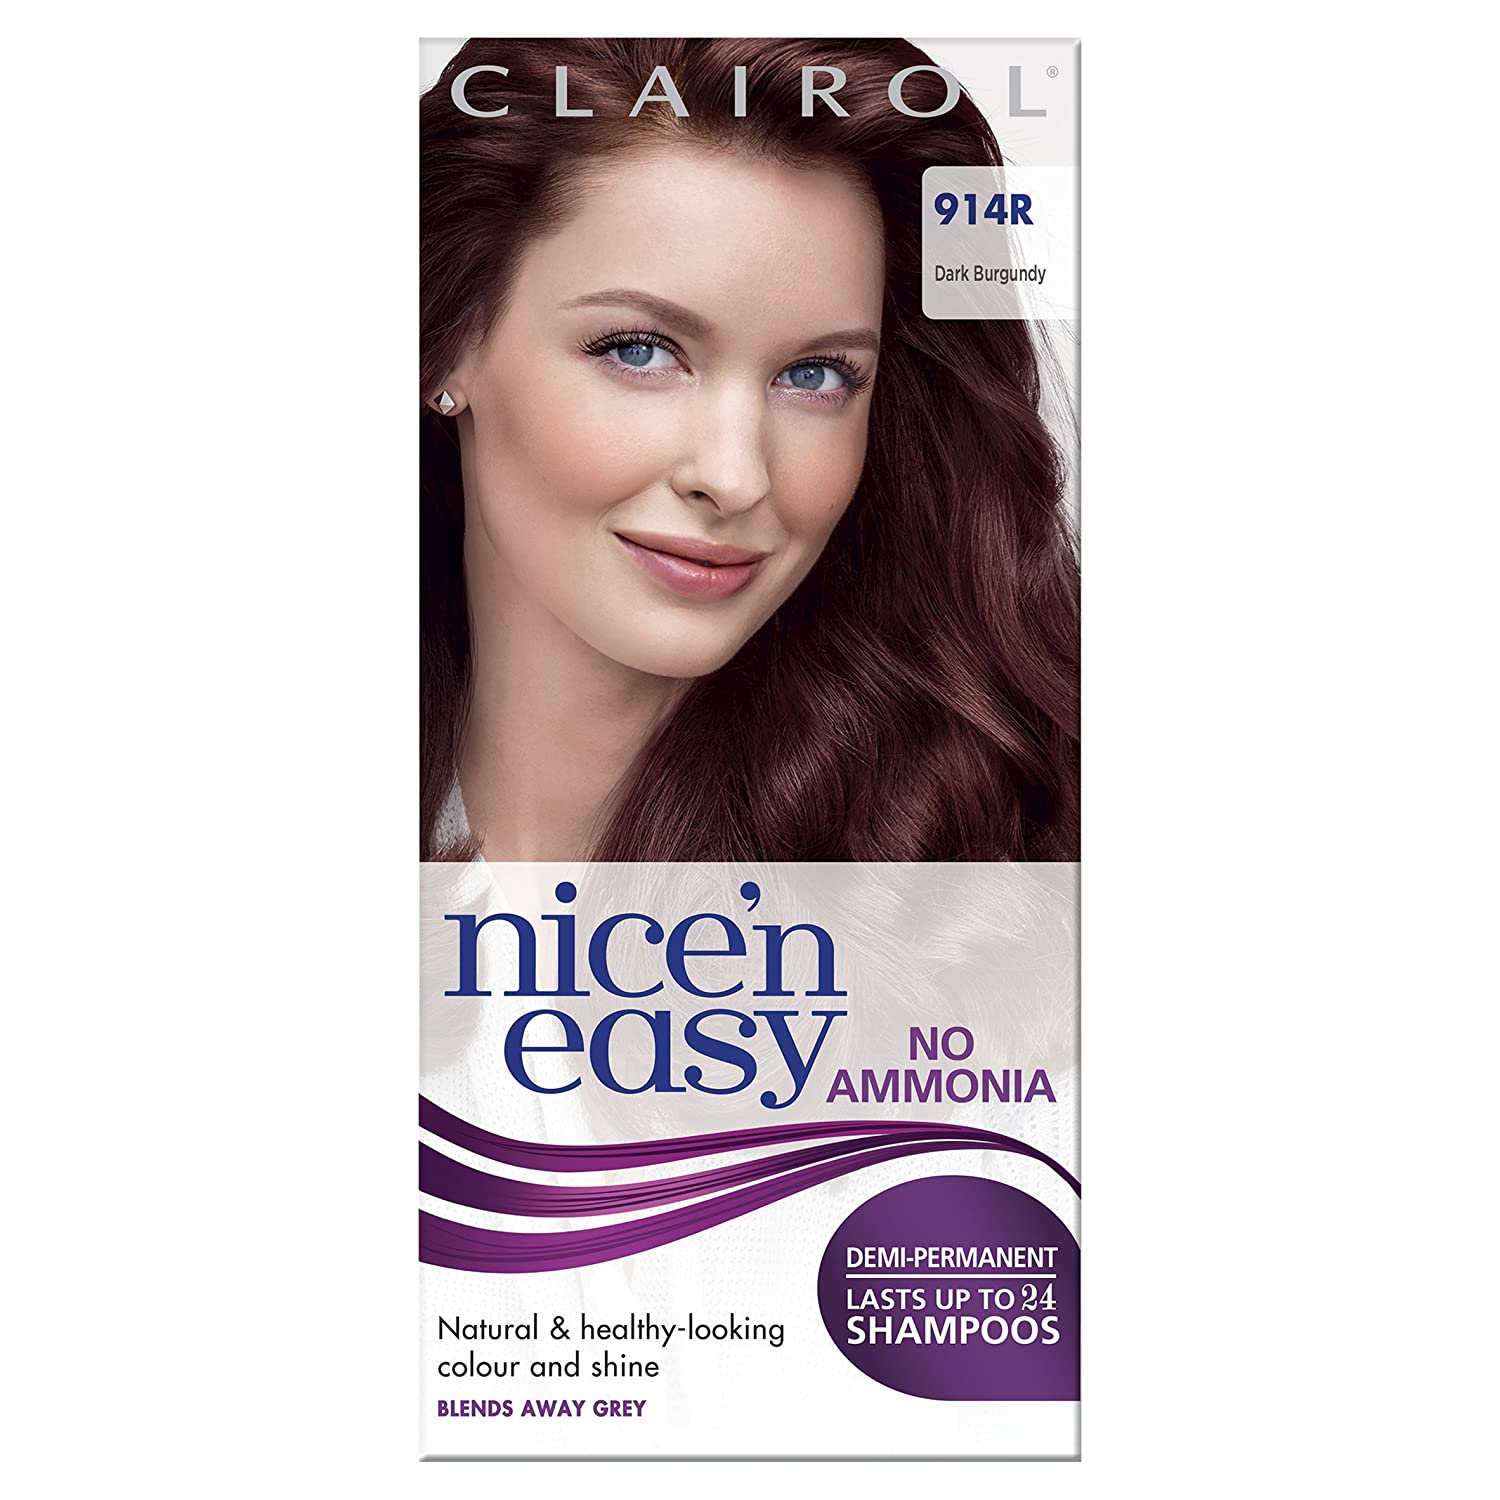 Clairol Nice'n Easy Semi-Permanent Hair Dye No Ammonia 77 Medium Ash Brown Coty 100687196